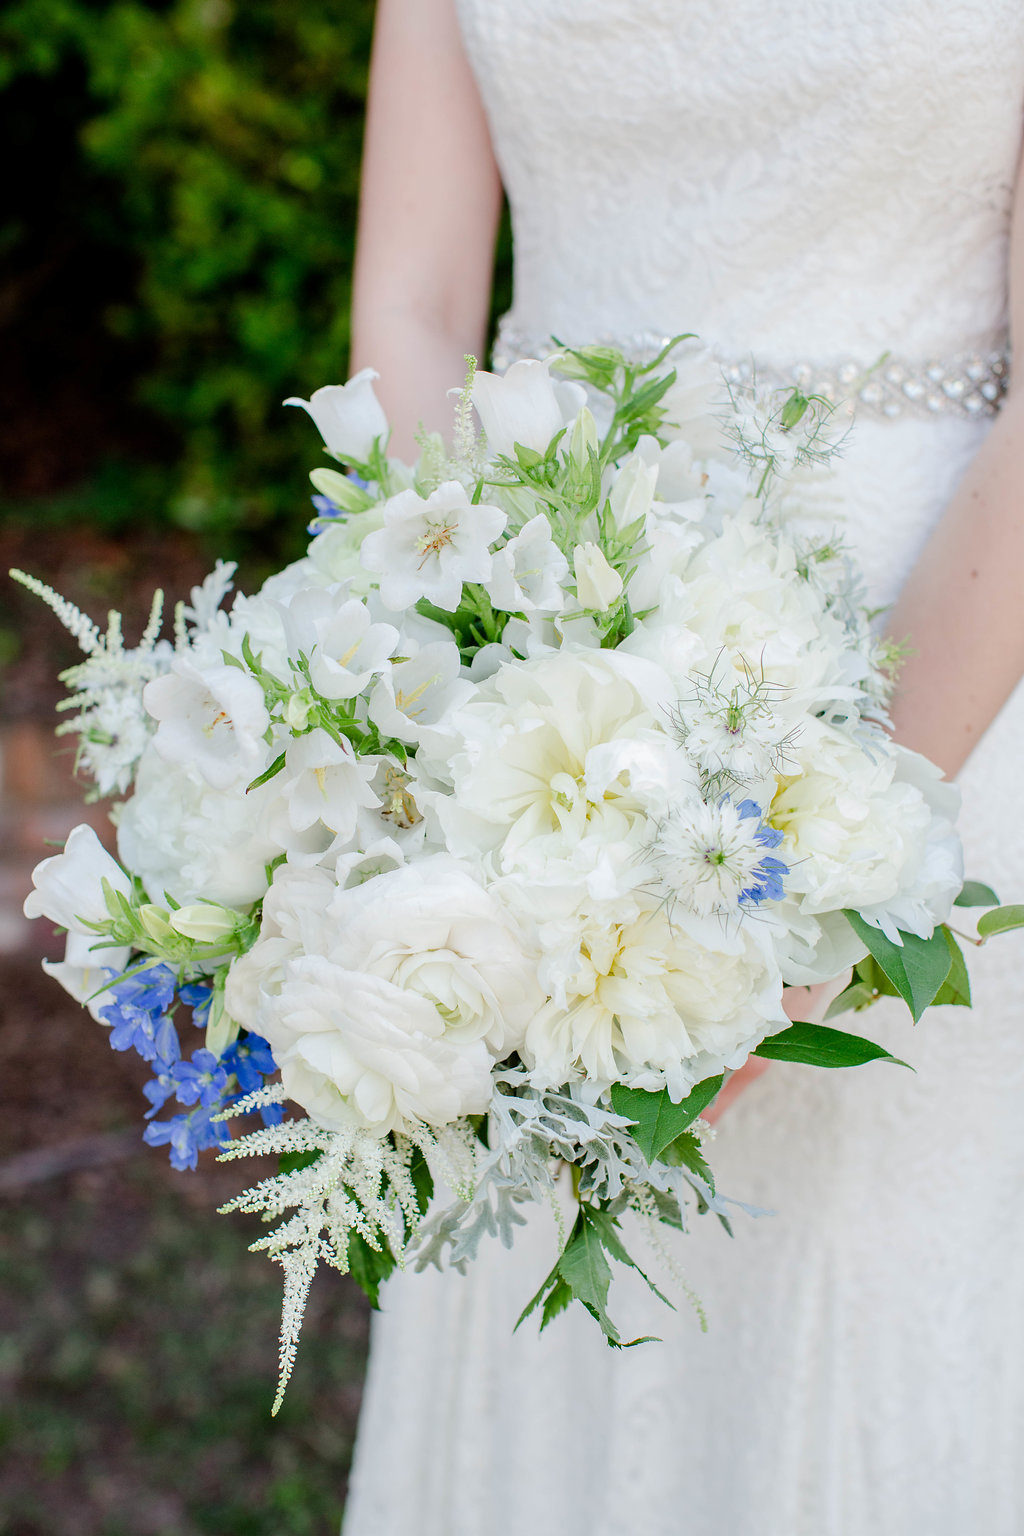 BOUNTIFUL BRIDAL - Featured floral: peonies, ranculus, astillbe, dusty miller, bell flower, nigella, forget me nots